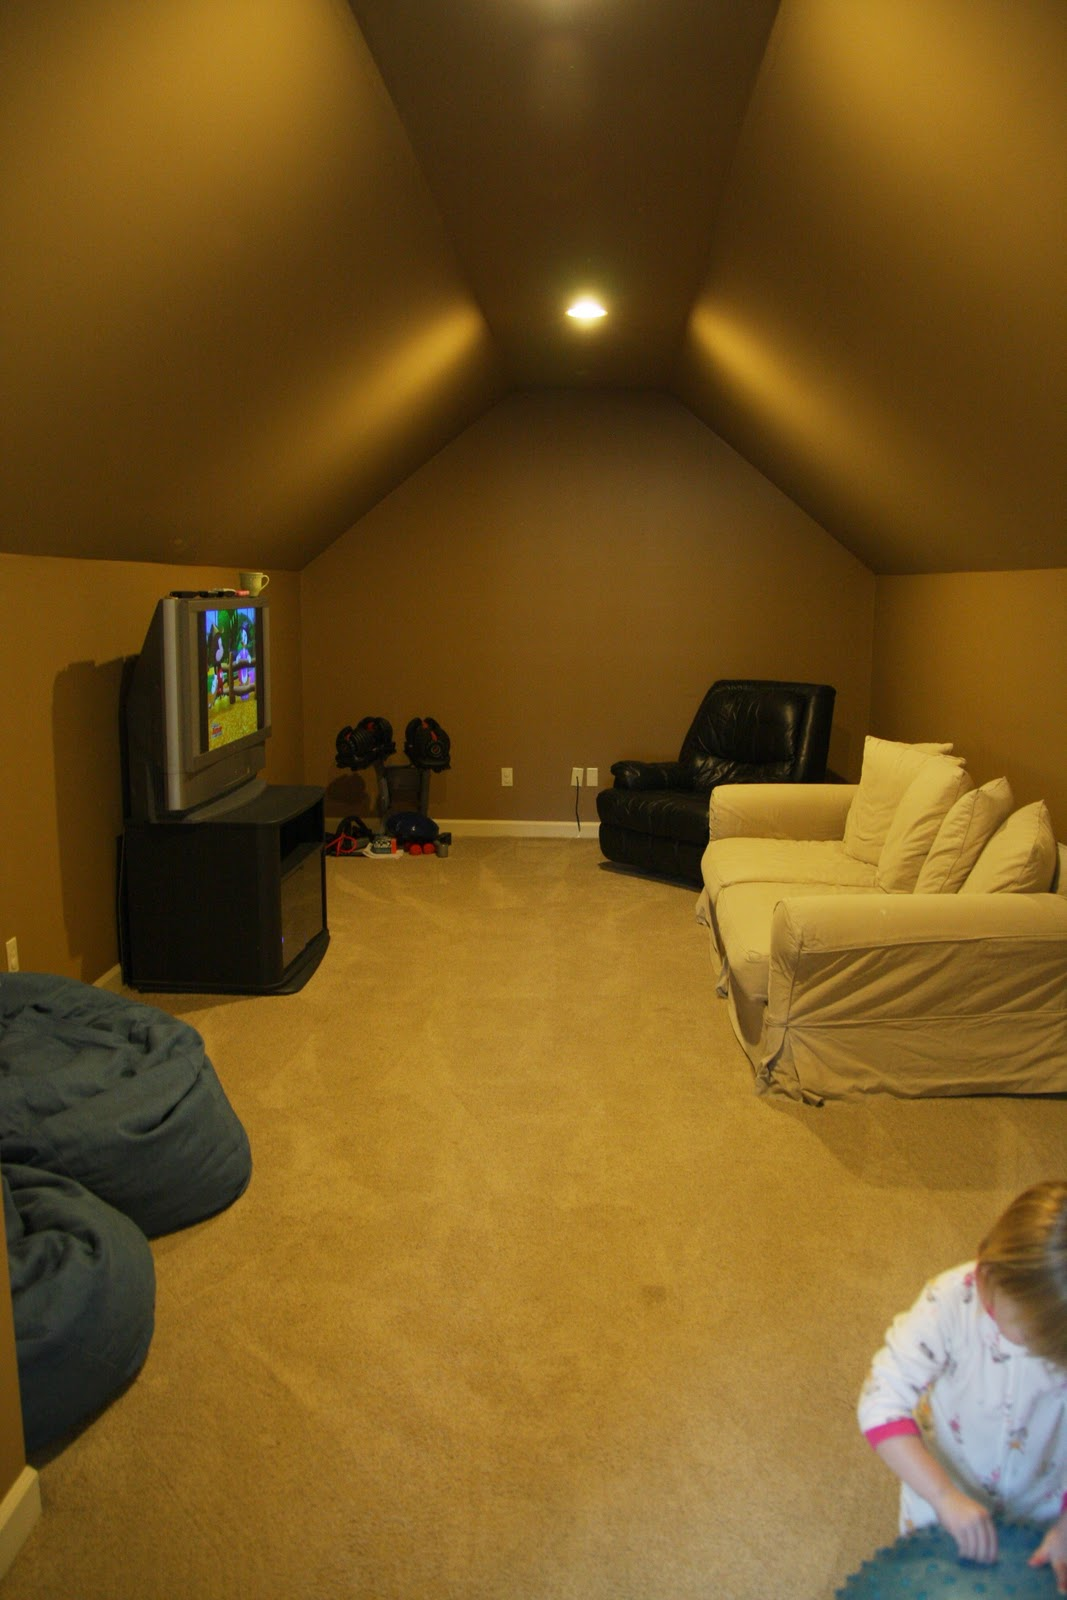 Kids Playroom With Tv the attic, kids tv room, and some playroom holiday spirit - simply